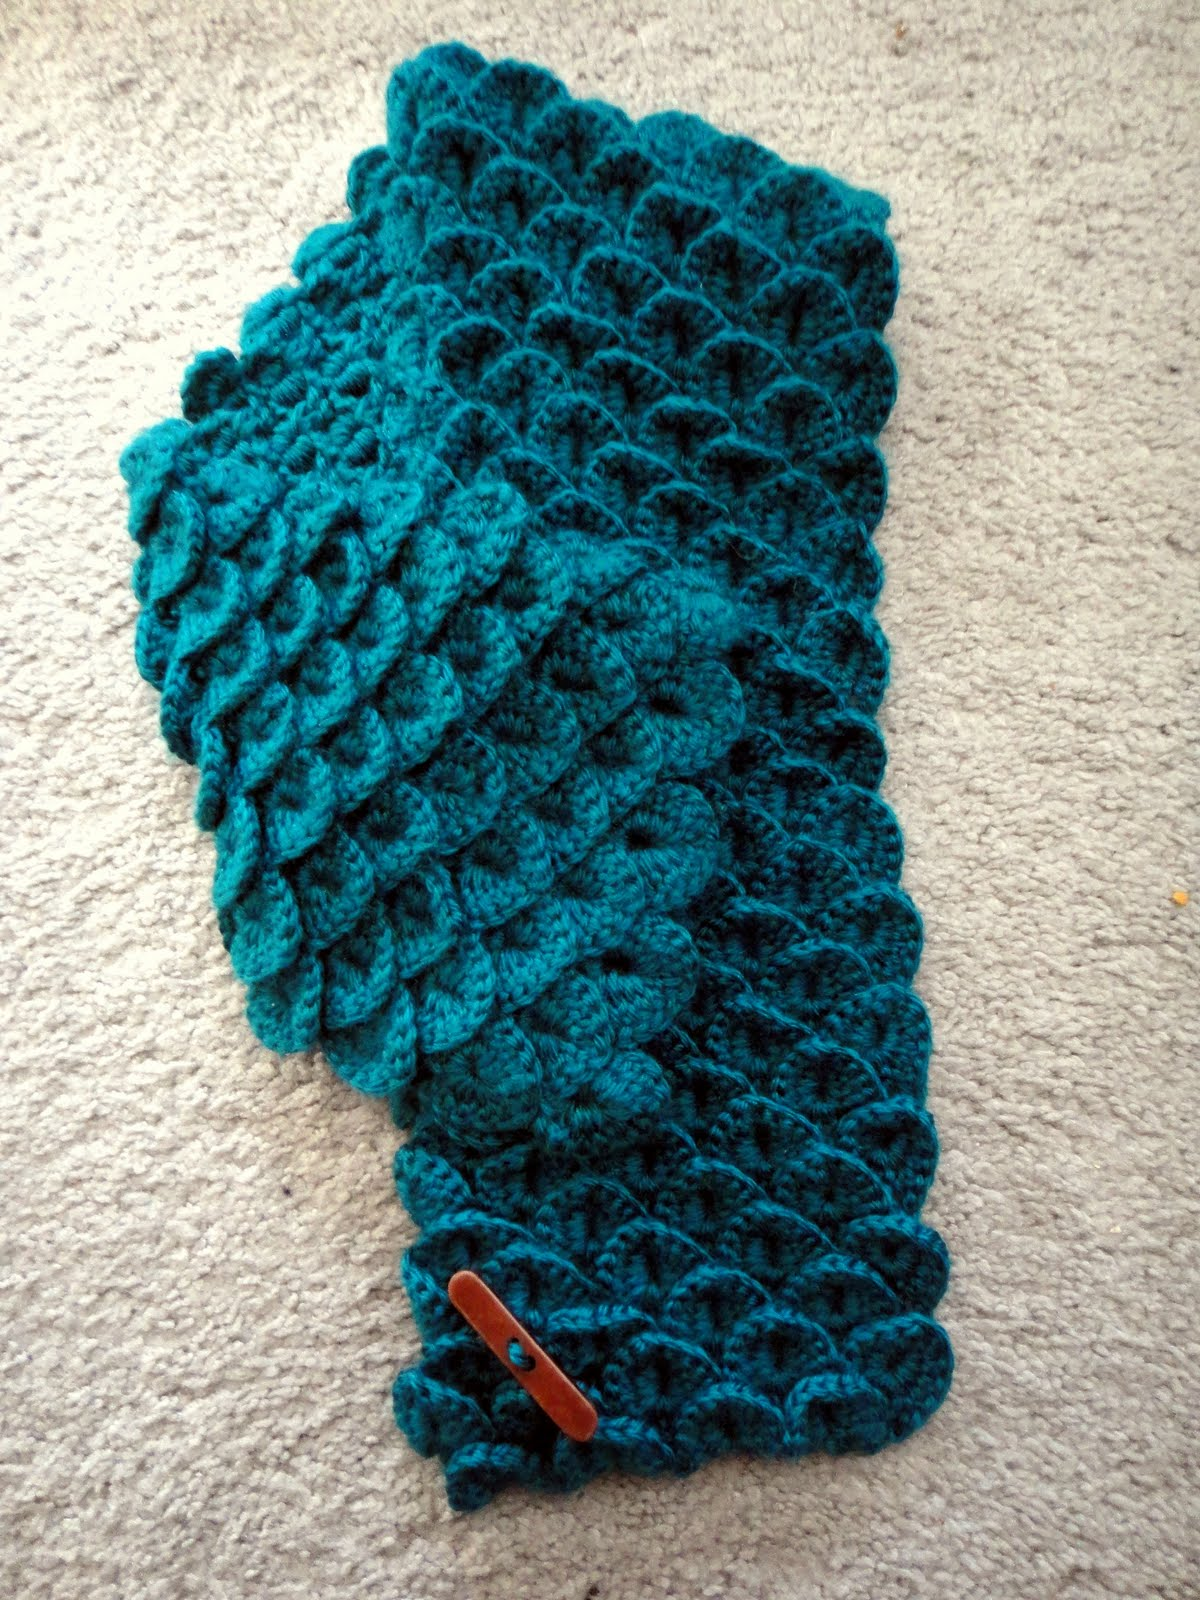 Crochet Crocodile Stitch : ... .com that included using, what they called, the Crocodile Stitch